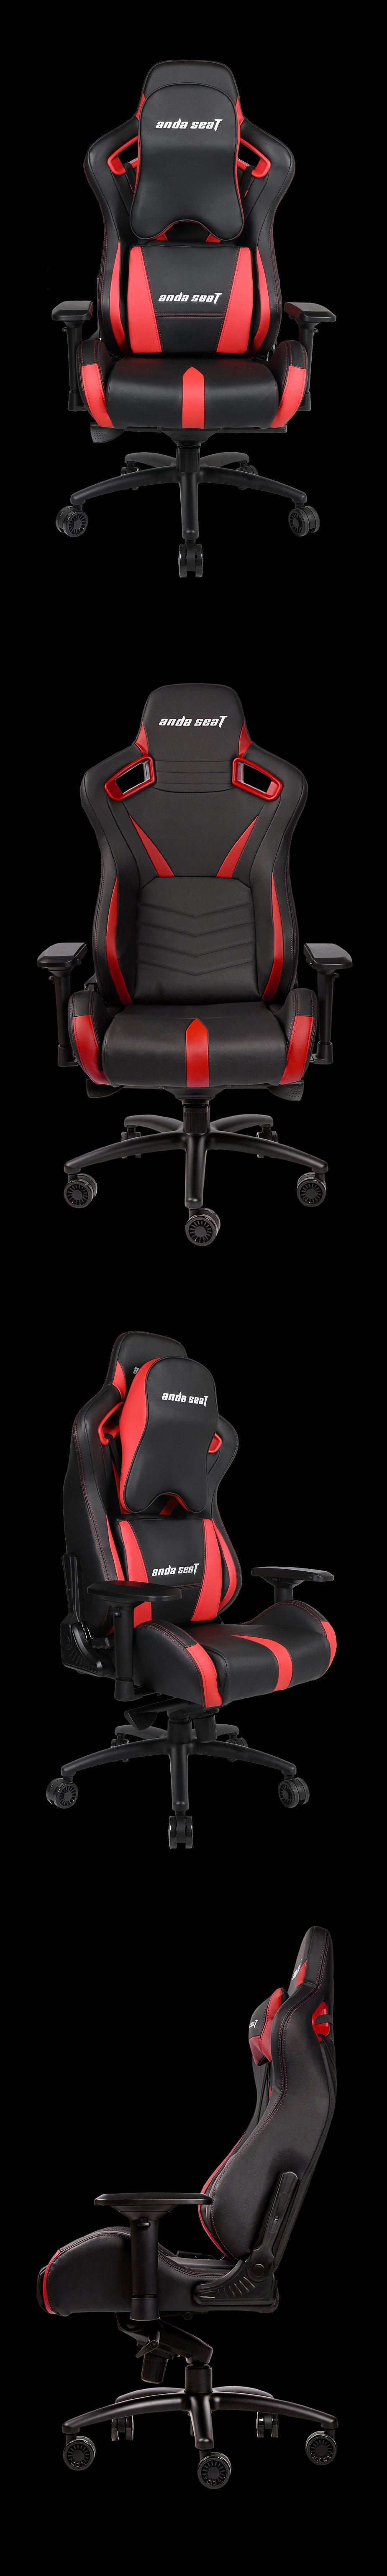 Anda Seat AD12-XL-03 v2 Gaming Chair - Black/Red - Desktop Overview 2